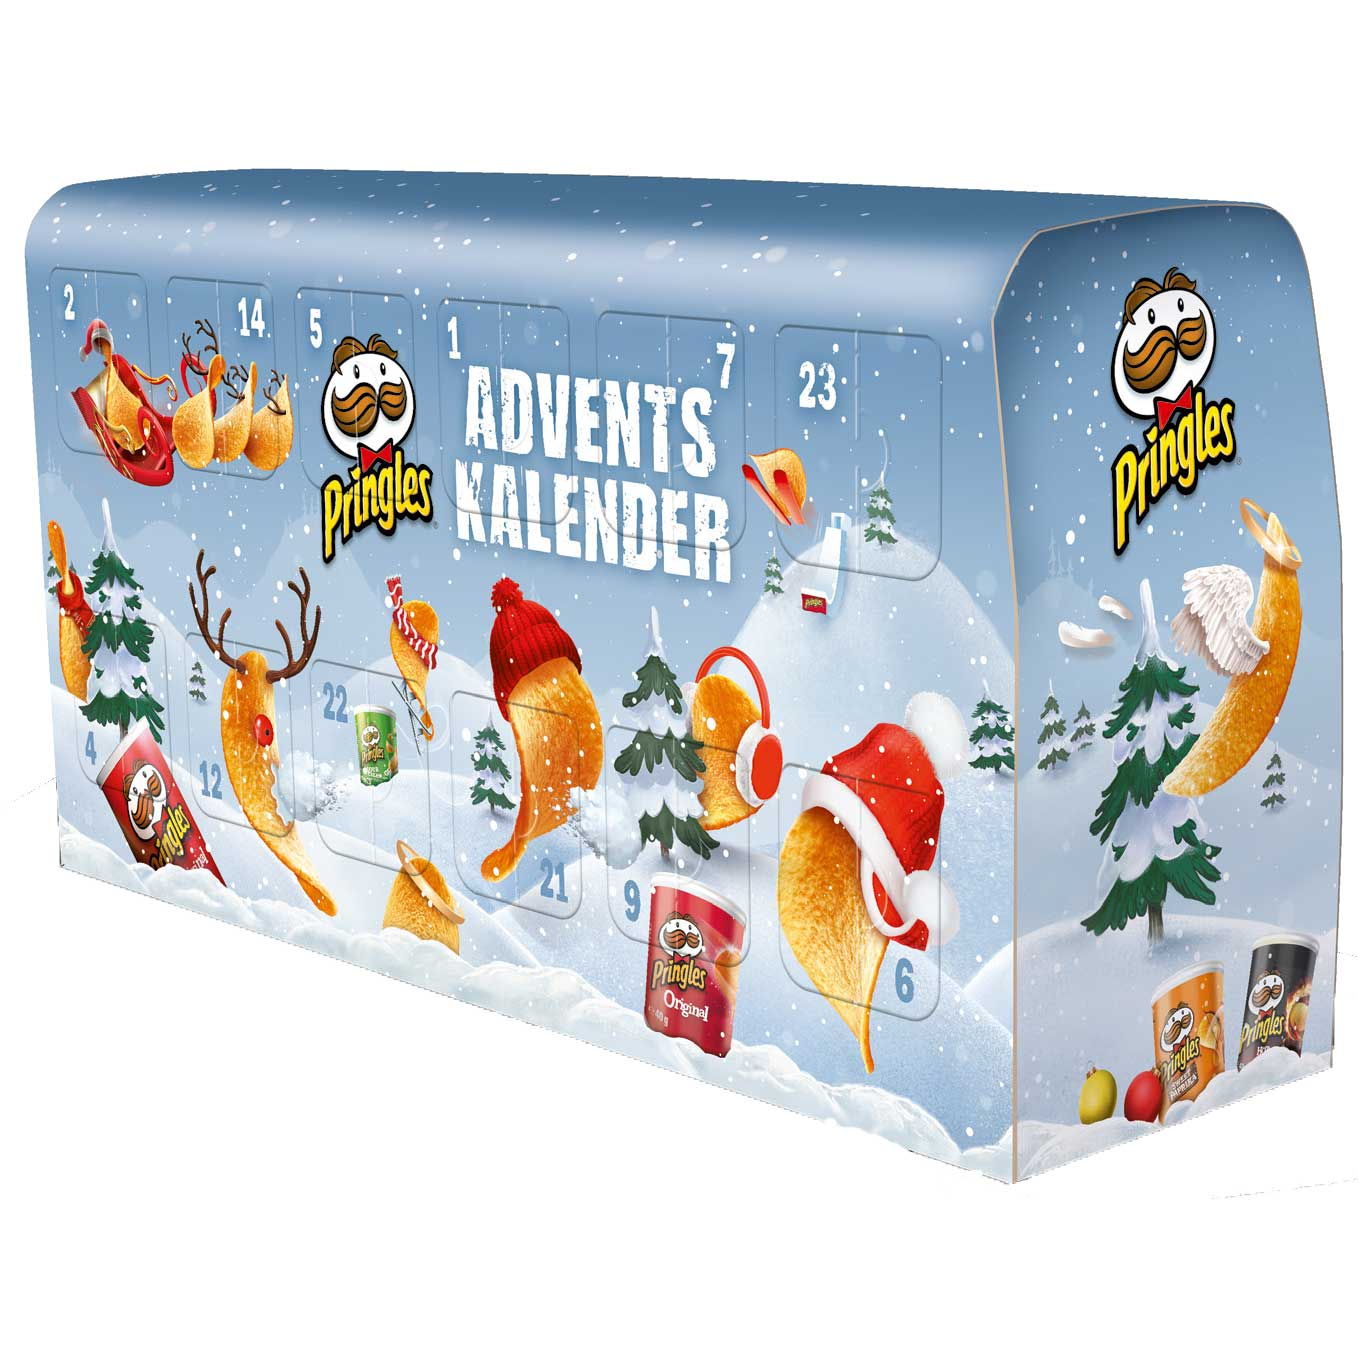 pringles bus adventskalender online kaufen im world of sweets shop. Black Bedroom Furniture Sets. Home Design Ideas